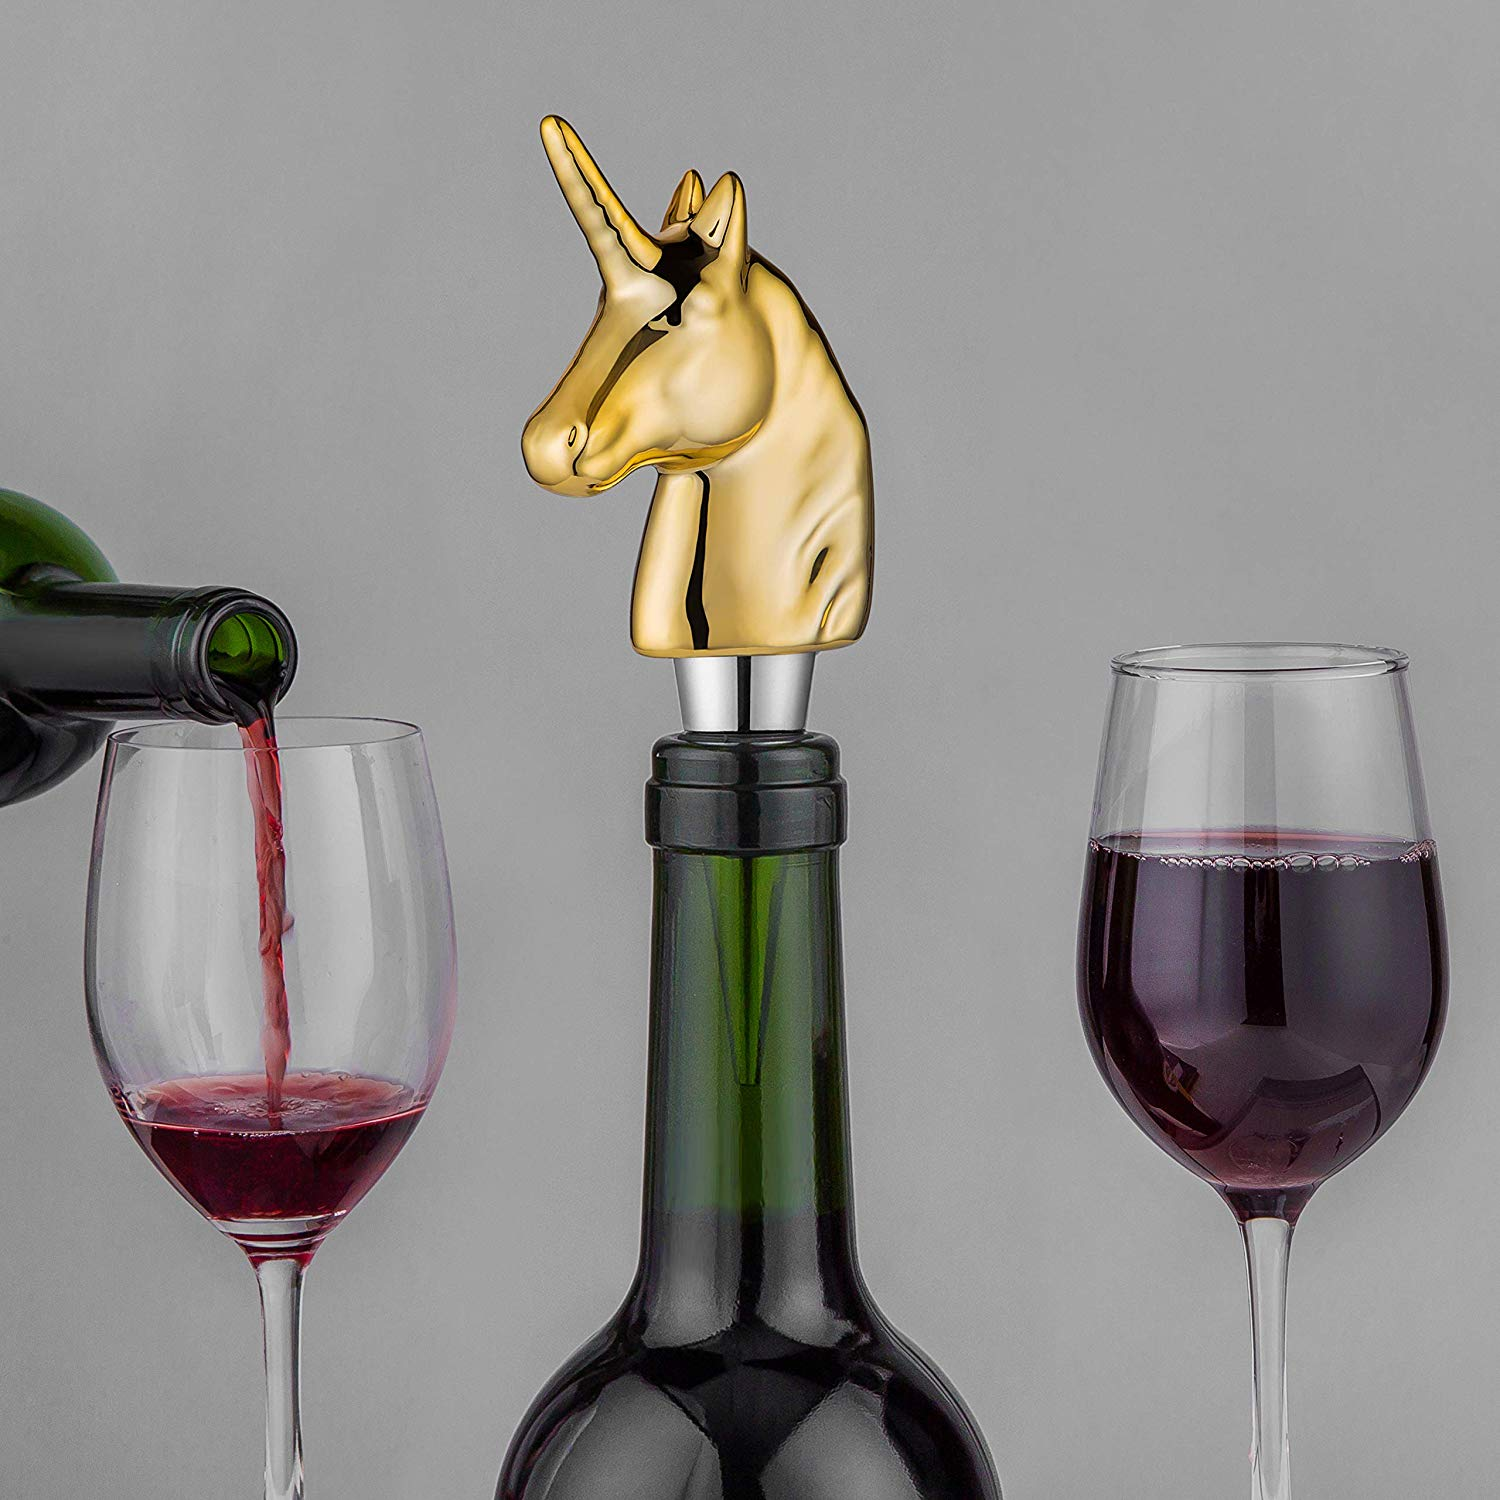 Smokeyojos Porcelain Gold Plating Unicorn Wine Bottle Stoppers Decorative Funny Wine Accessories Gift